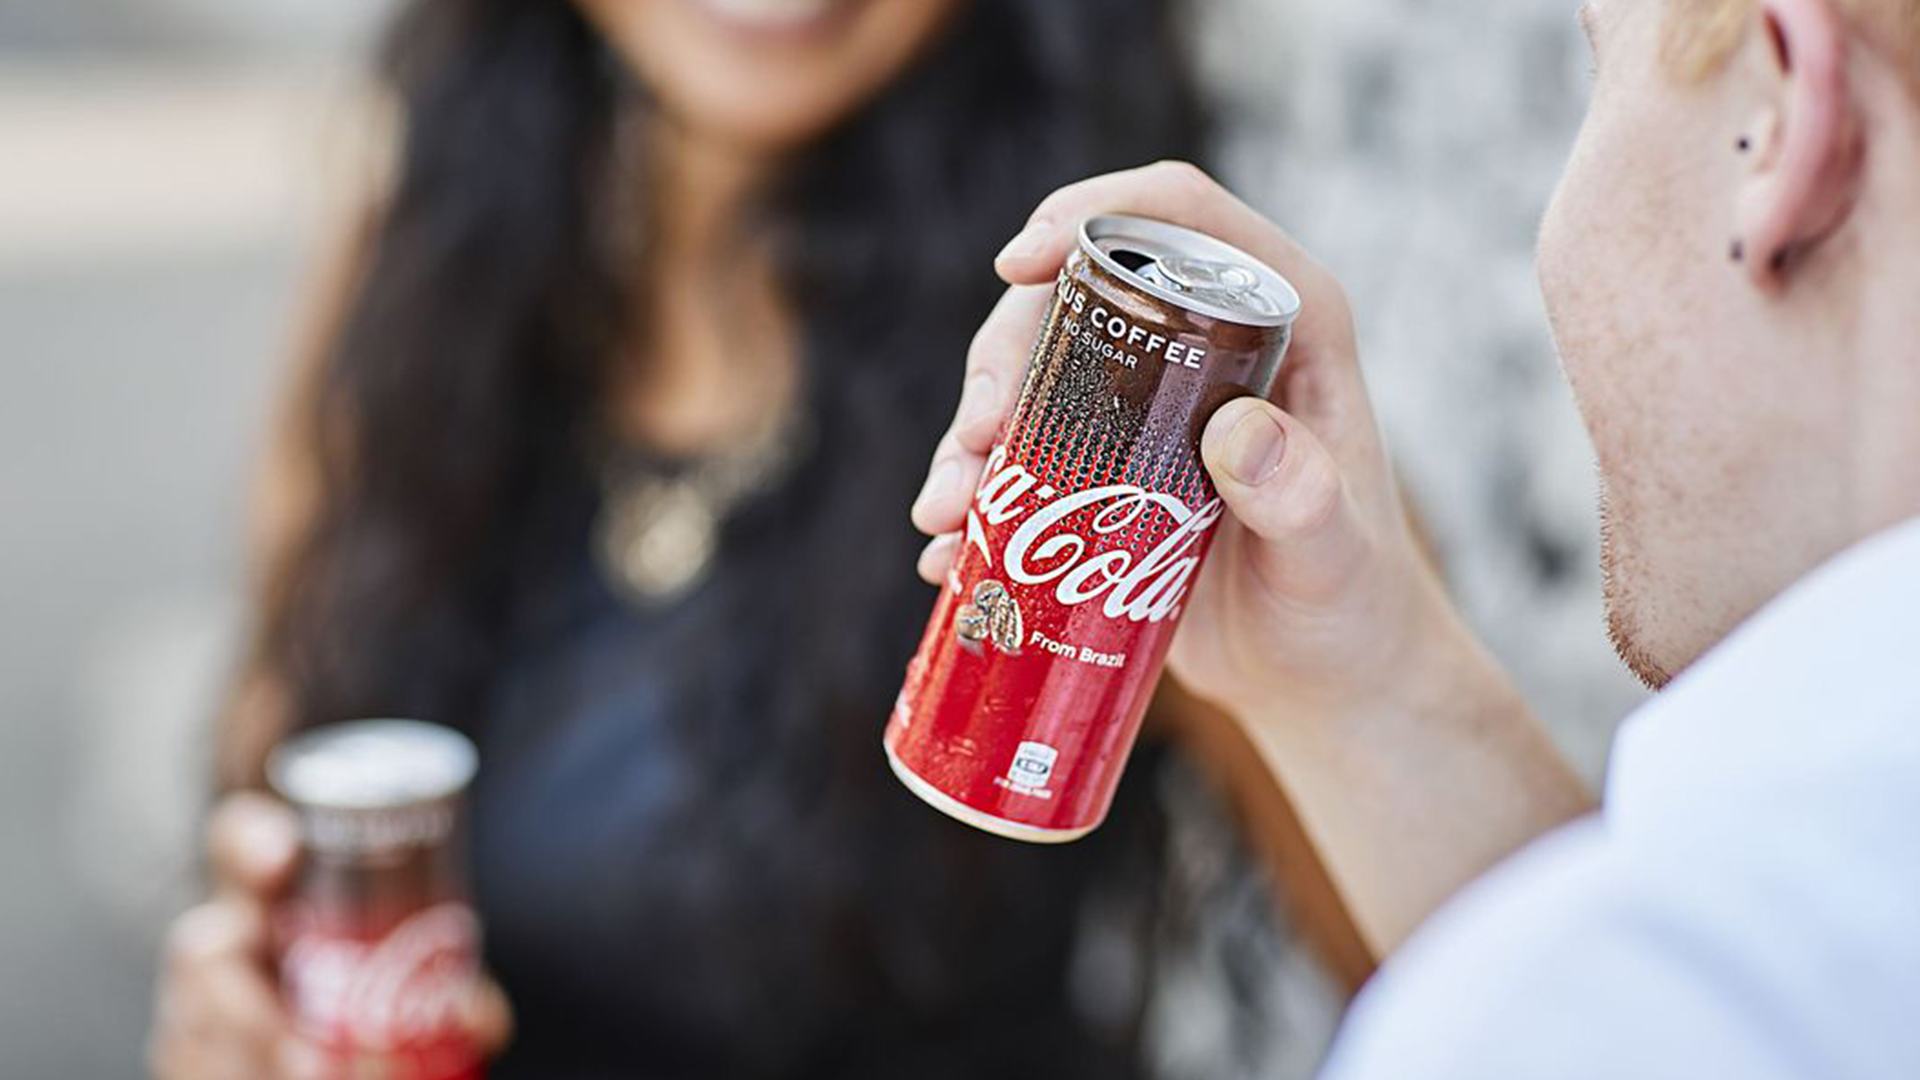 Coffee-flavored Coke is here with more caffeine - TODAY.com